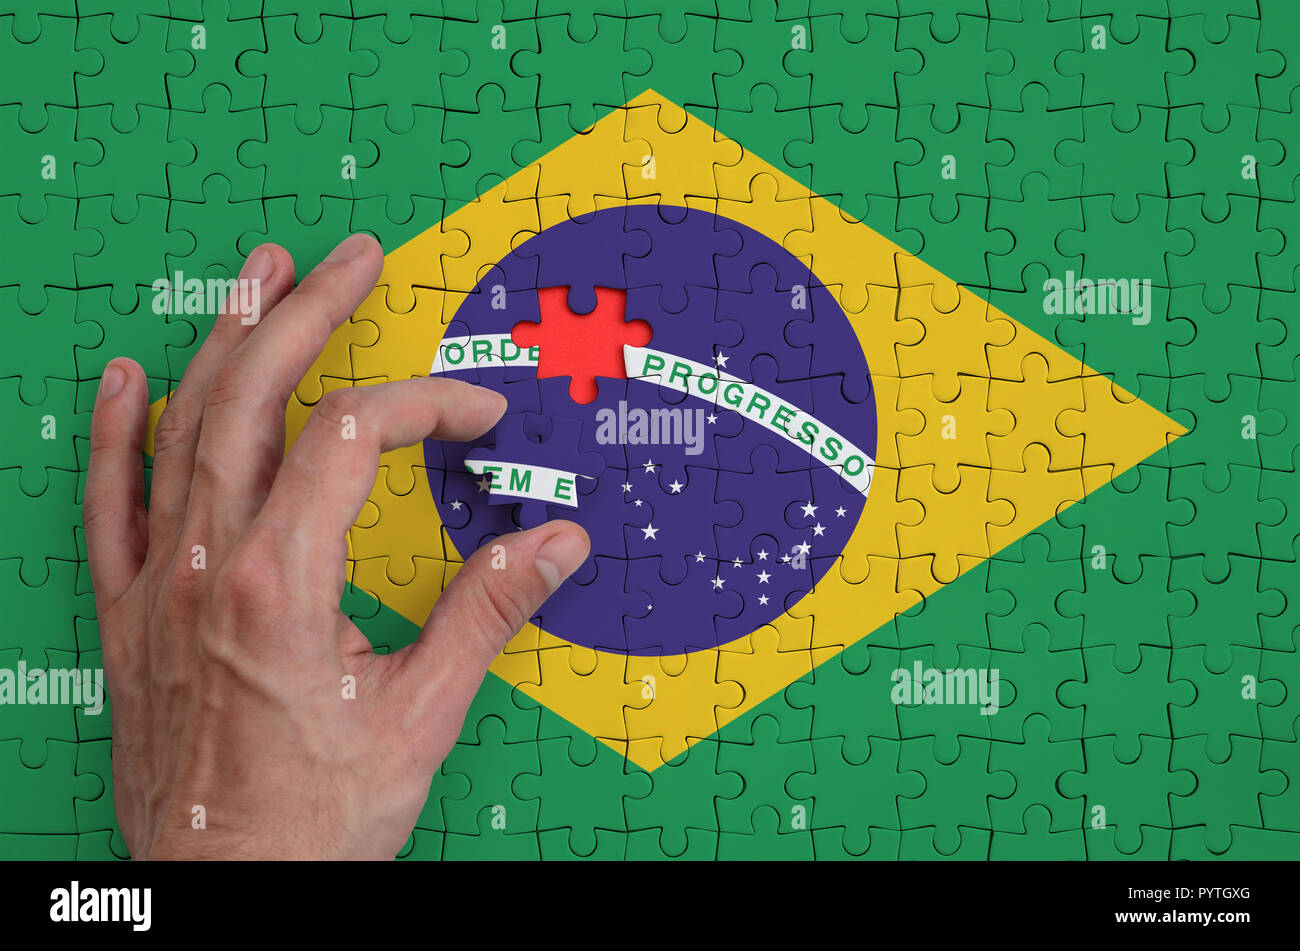 Brazil flag  is depicted on a puzzle, which the man's hand completes to fold. - Stock Image